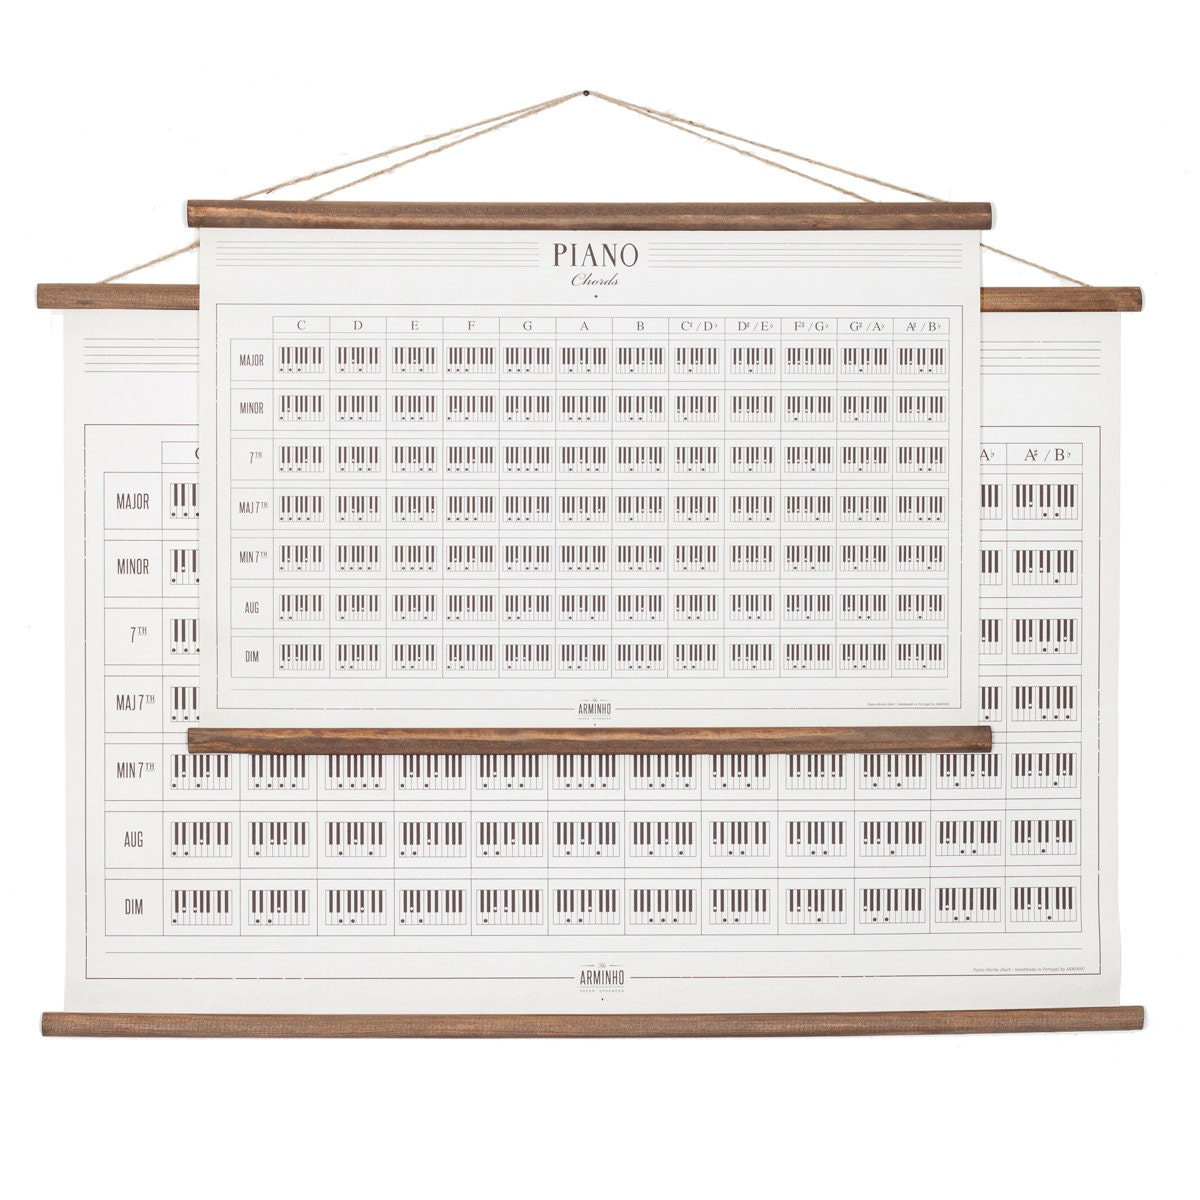 Piano chords chart poster wood and canvas handmade vintage description piano chart poster hexwebz Gallery